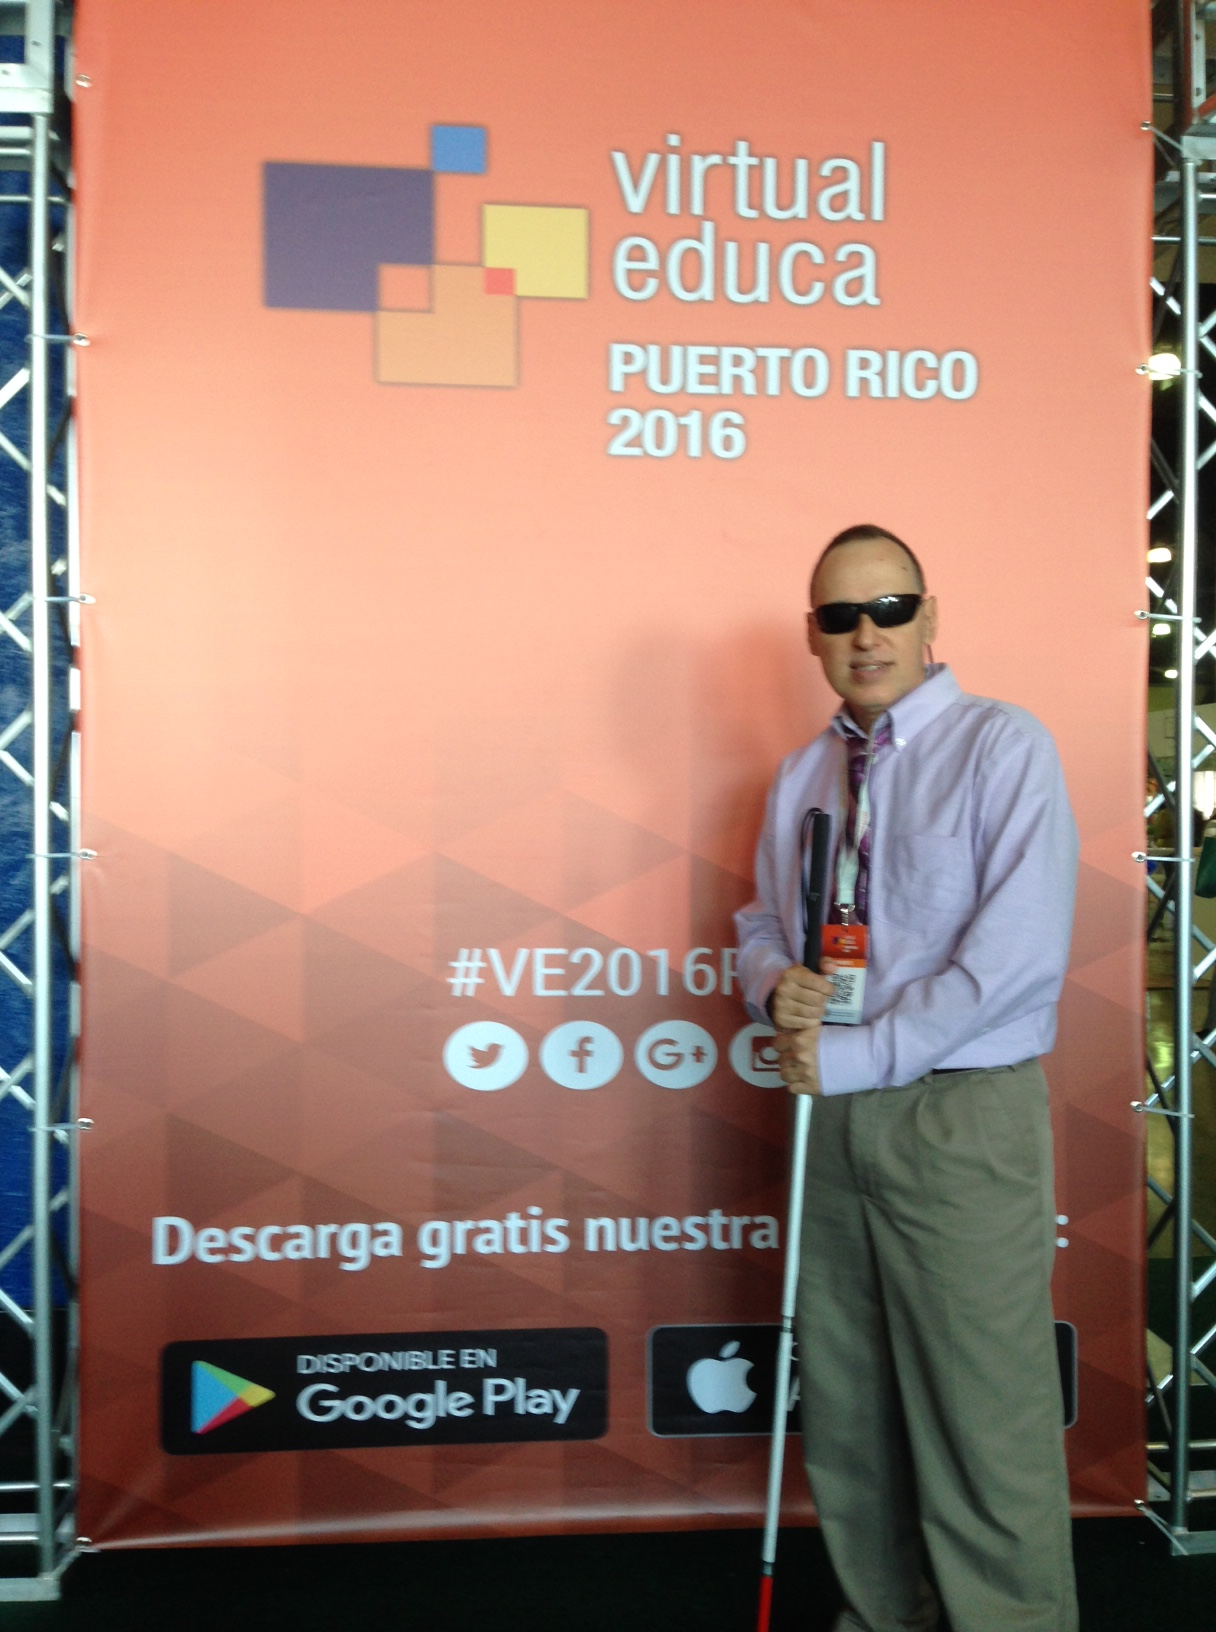 Foto de José Manolo Alvarez, en el evento internacional Virtual Educa 2016.